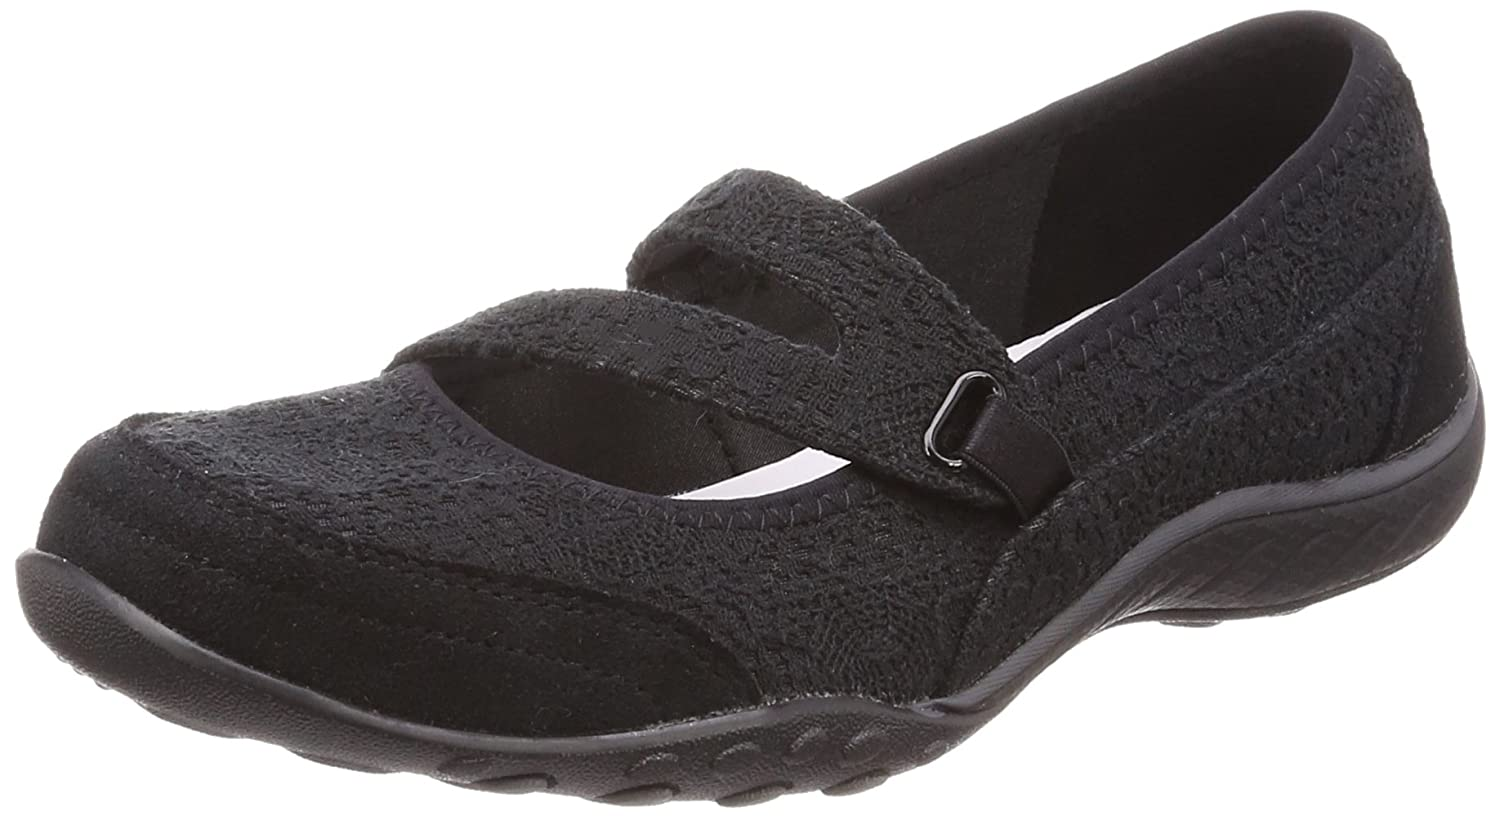 Skechers Breathe-Easy-Pretty B078YJZ8QF Swagger, Mary Skechers Janes Breathe-Easy-Pretty Femme Noir (Black) d0652ed - shopssong.space